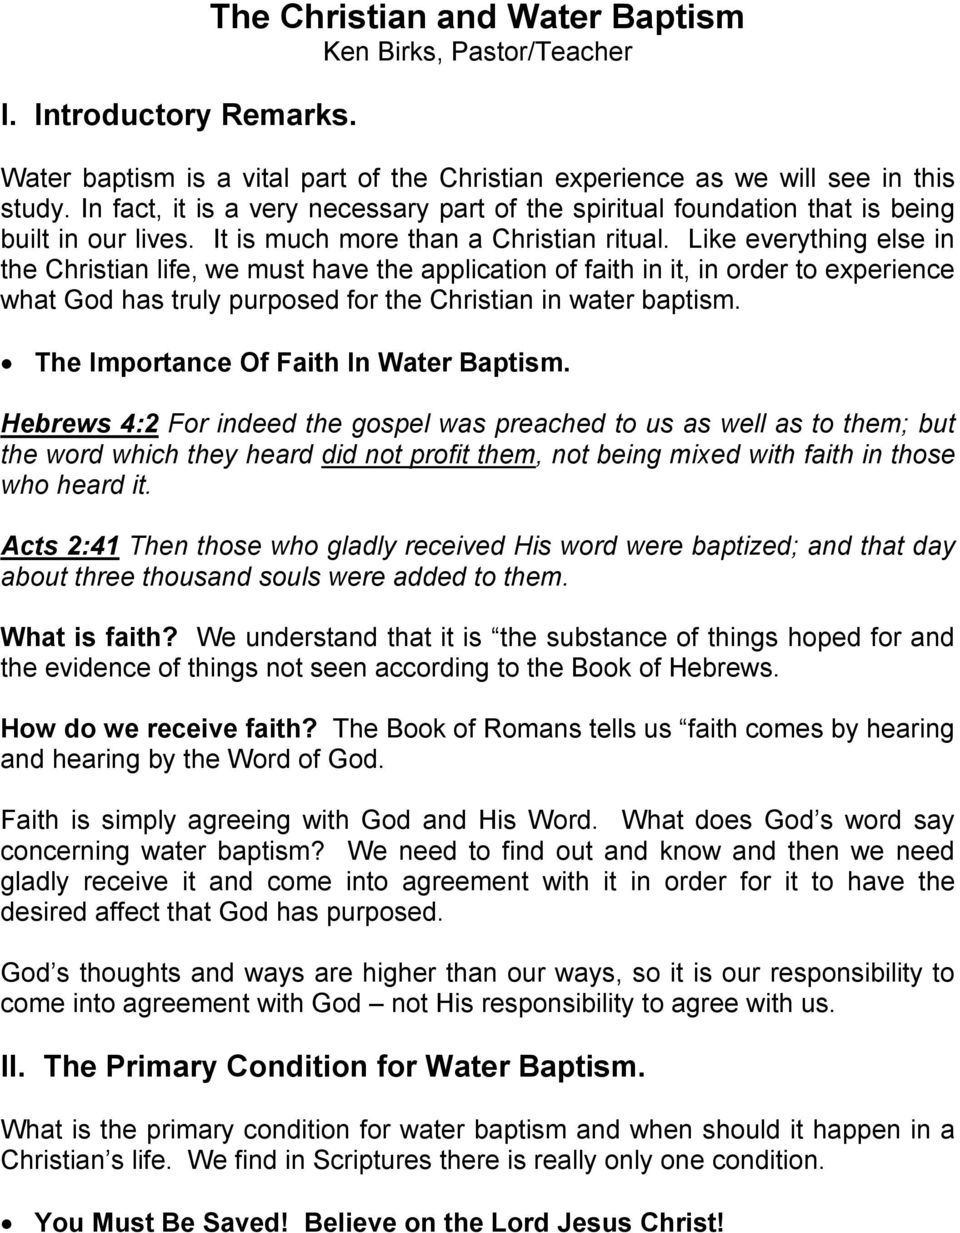 Like everything else in the Christian life, we must have the application of faith in it, in order to experience what God has truly purposed for the Christian in water baptism.